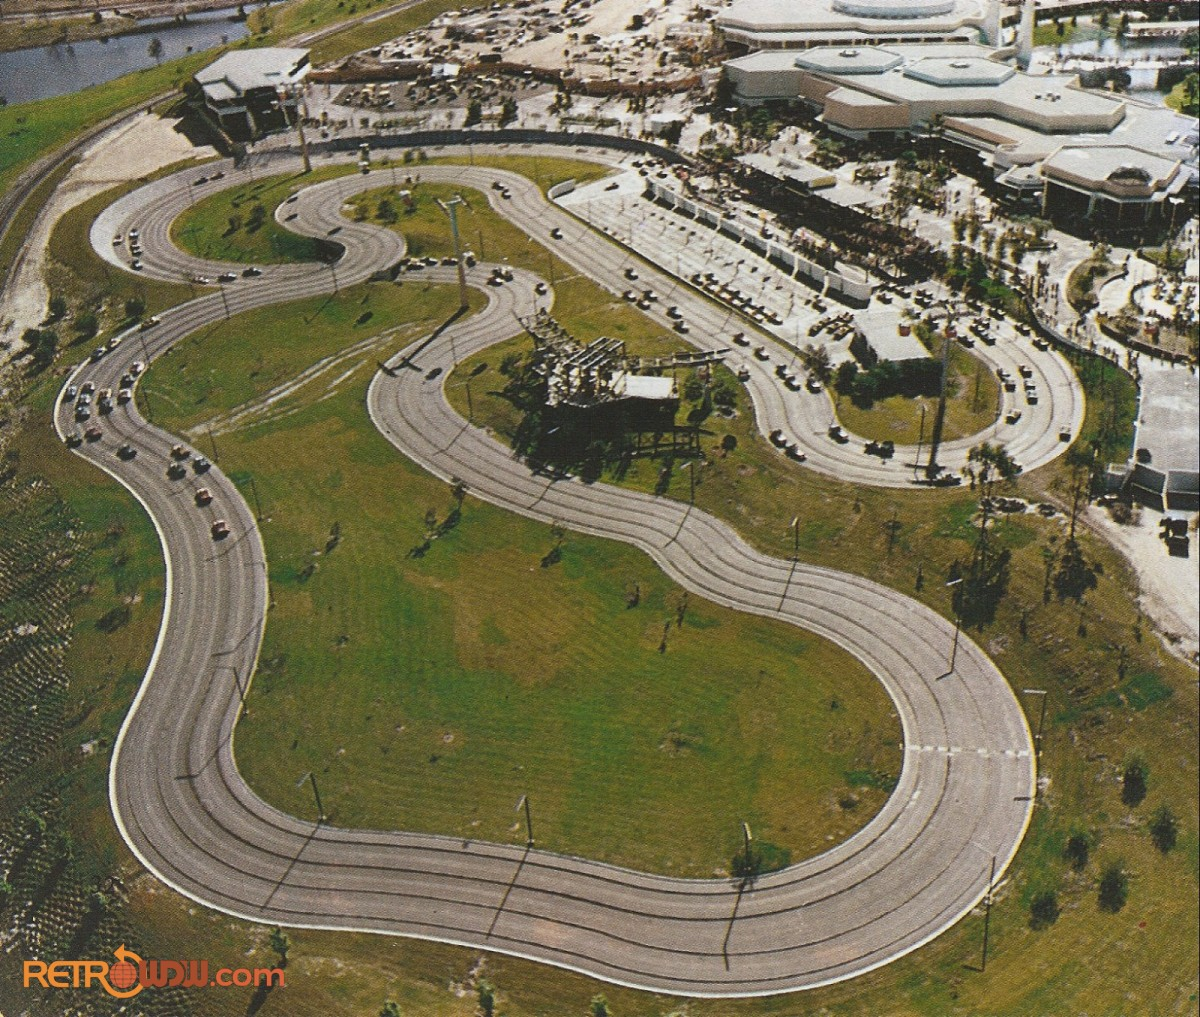 Tomorrowland Grand Prix with Skyway Transfer Station